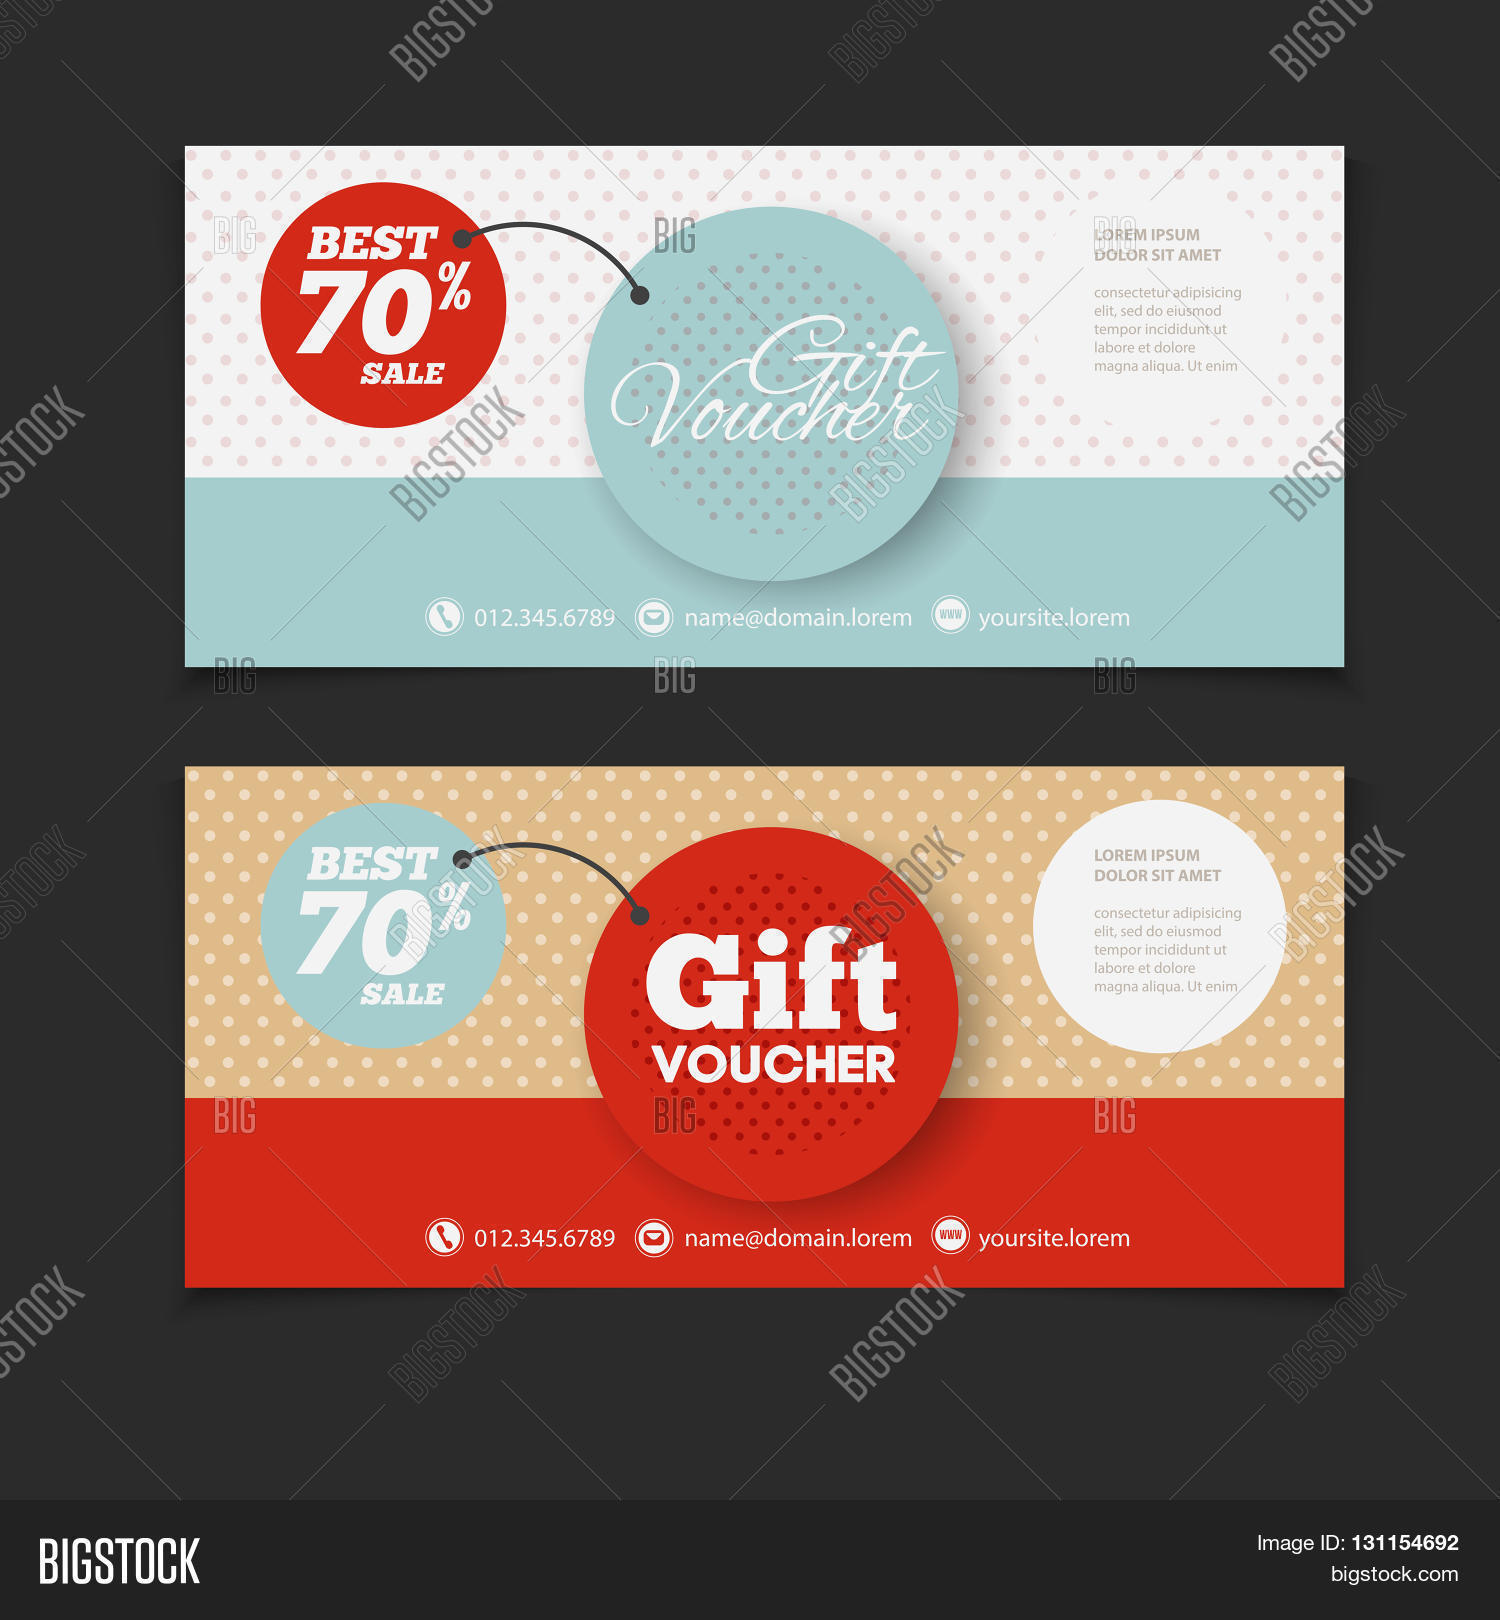 abstract gift voucher or coupon design template voucher design abstract gift voucher or coupon design template voucher design blank print design